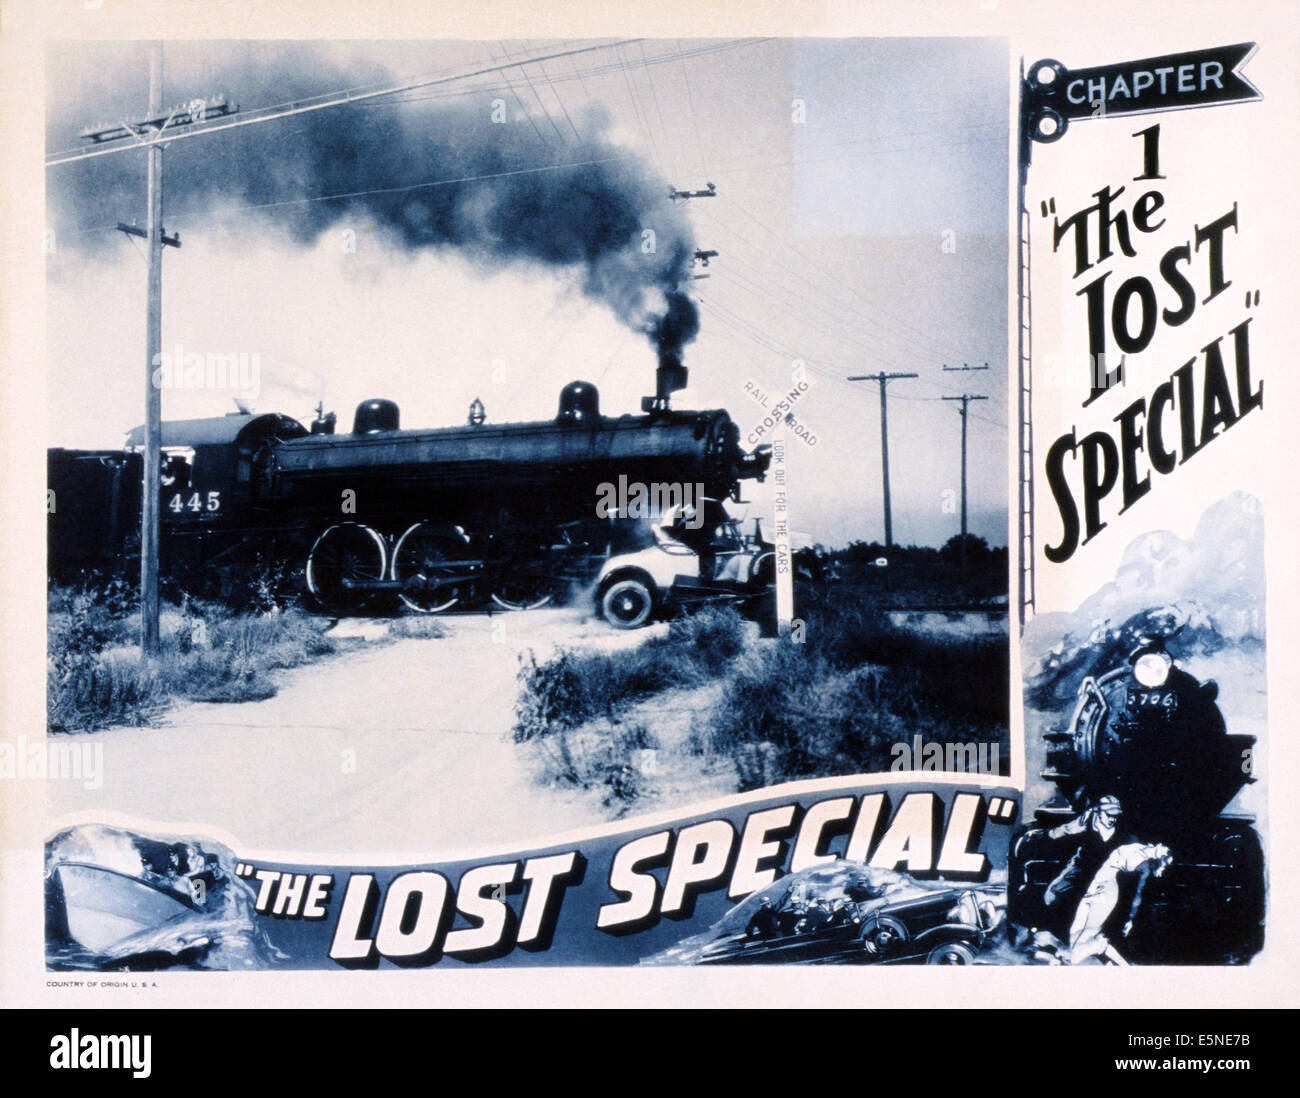 THE LOST SPECIAL, 1932 - Stock Image